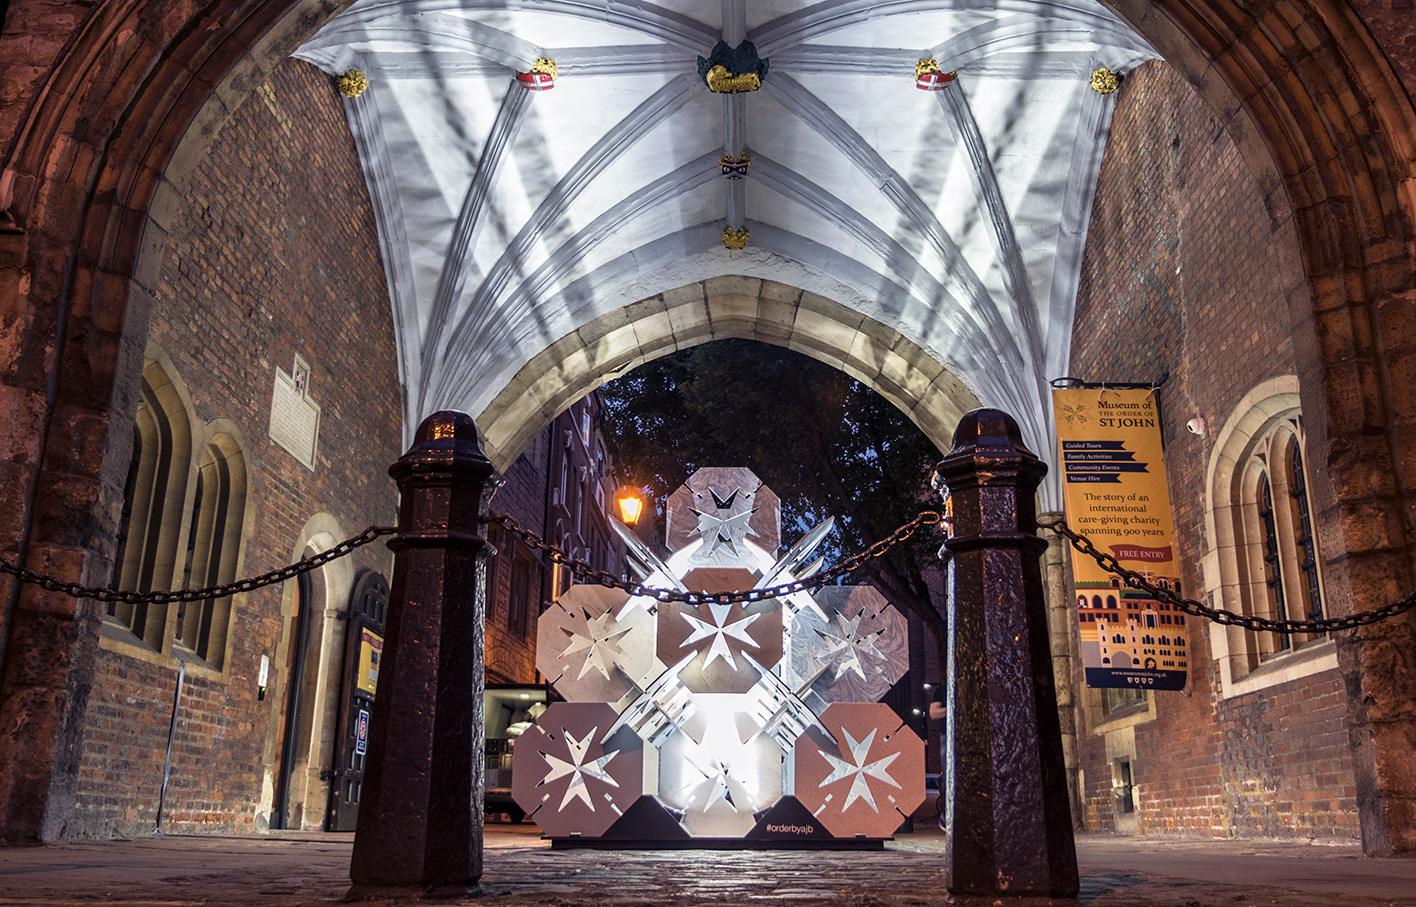 Order by Aldworth James & Bond | Clerkenwell Design Week | 'Order' at night, illuminated in St John's Gate